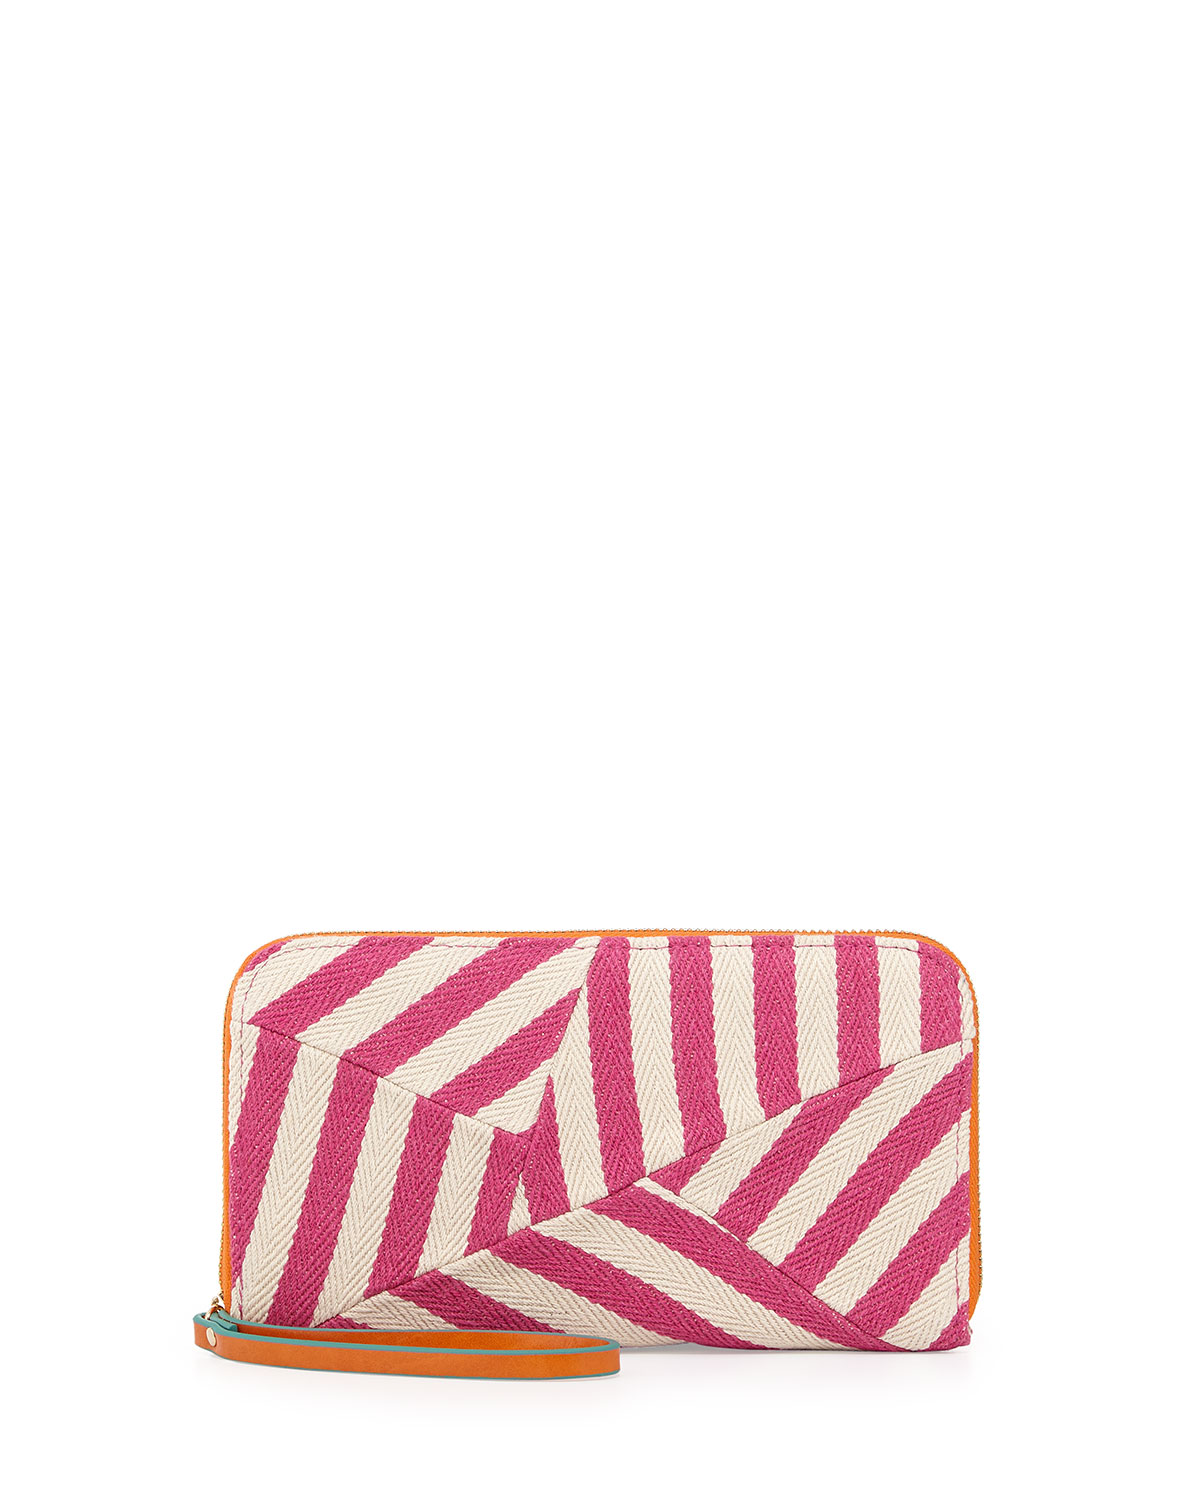 Striped Canvas Zip Wallet, Pink/Orange   POVERTY FLATS by rian